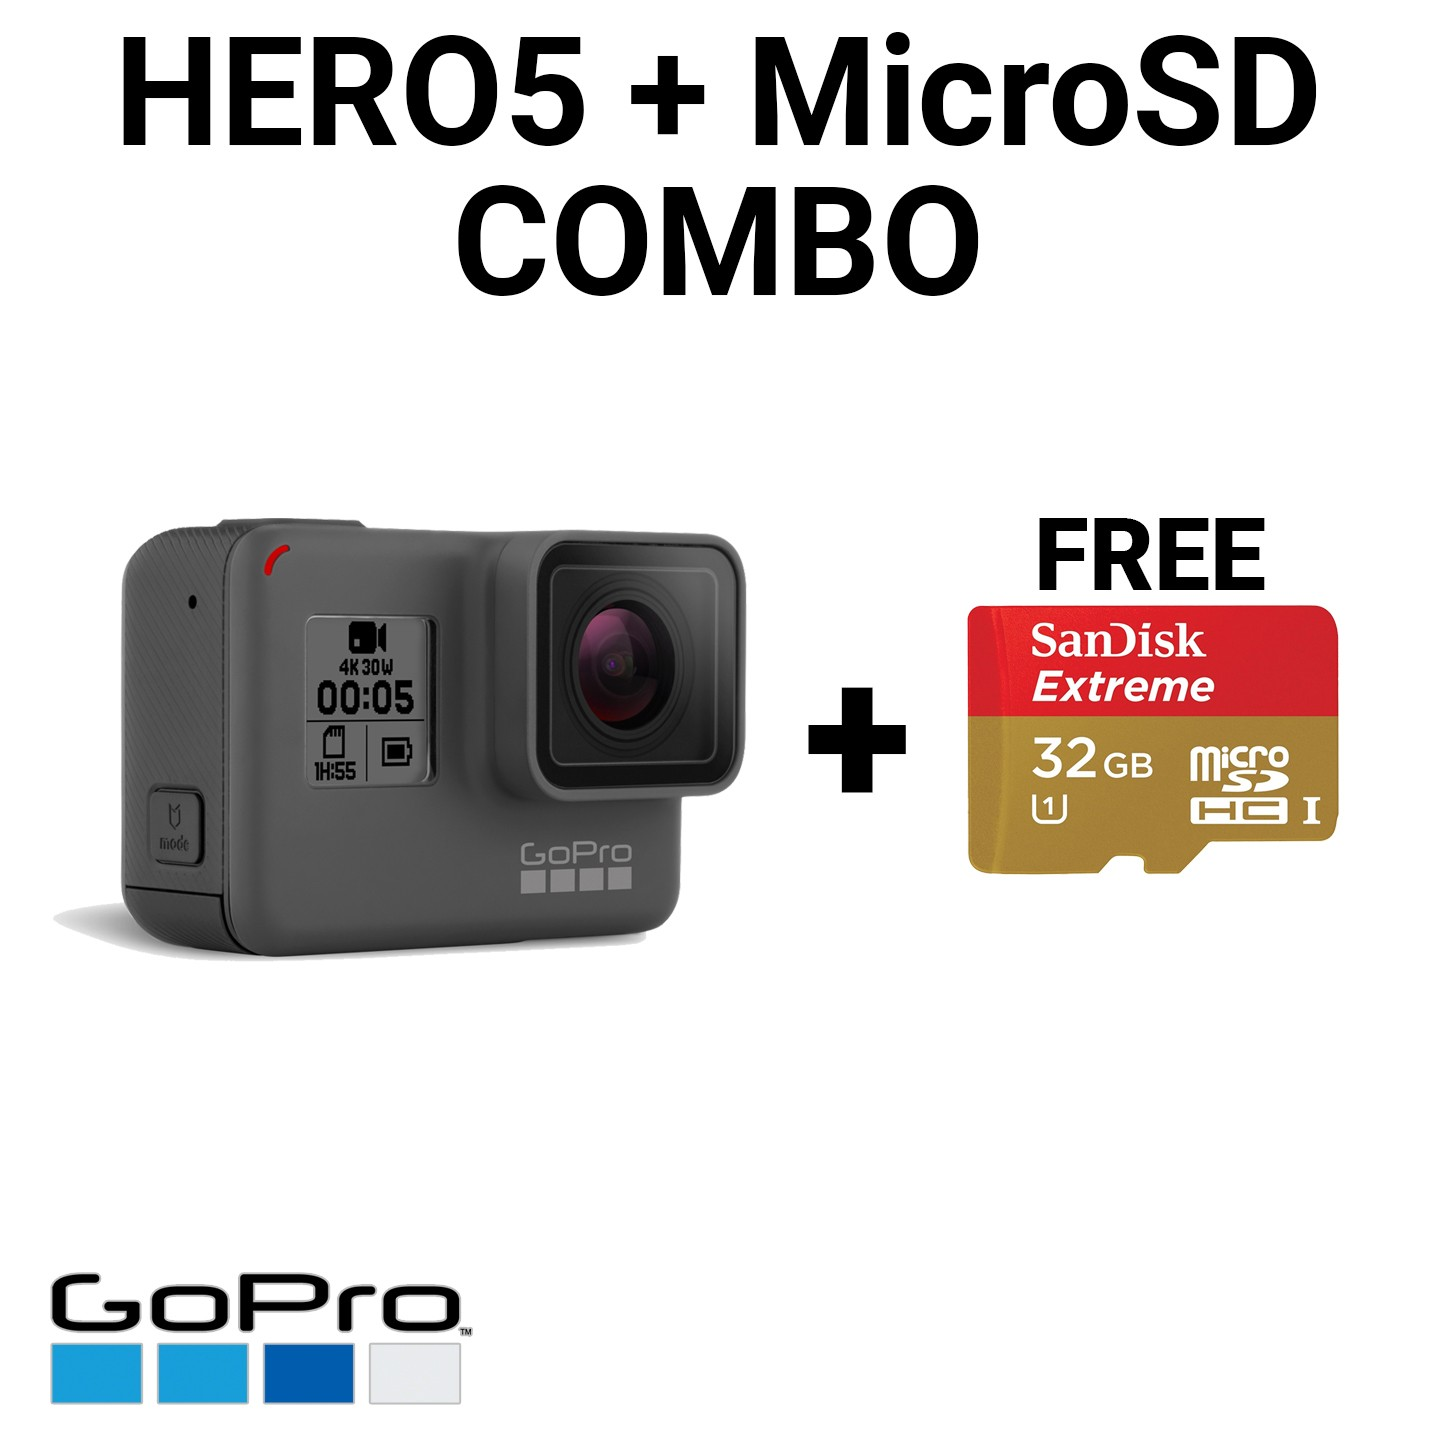 GoPro Hero5 Black with FREE 32GB MicroSD Card Combo Package